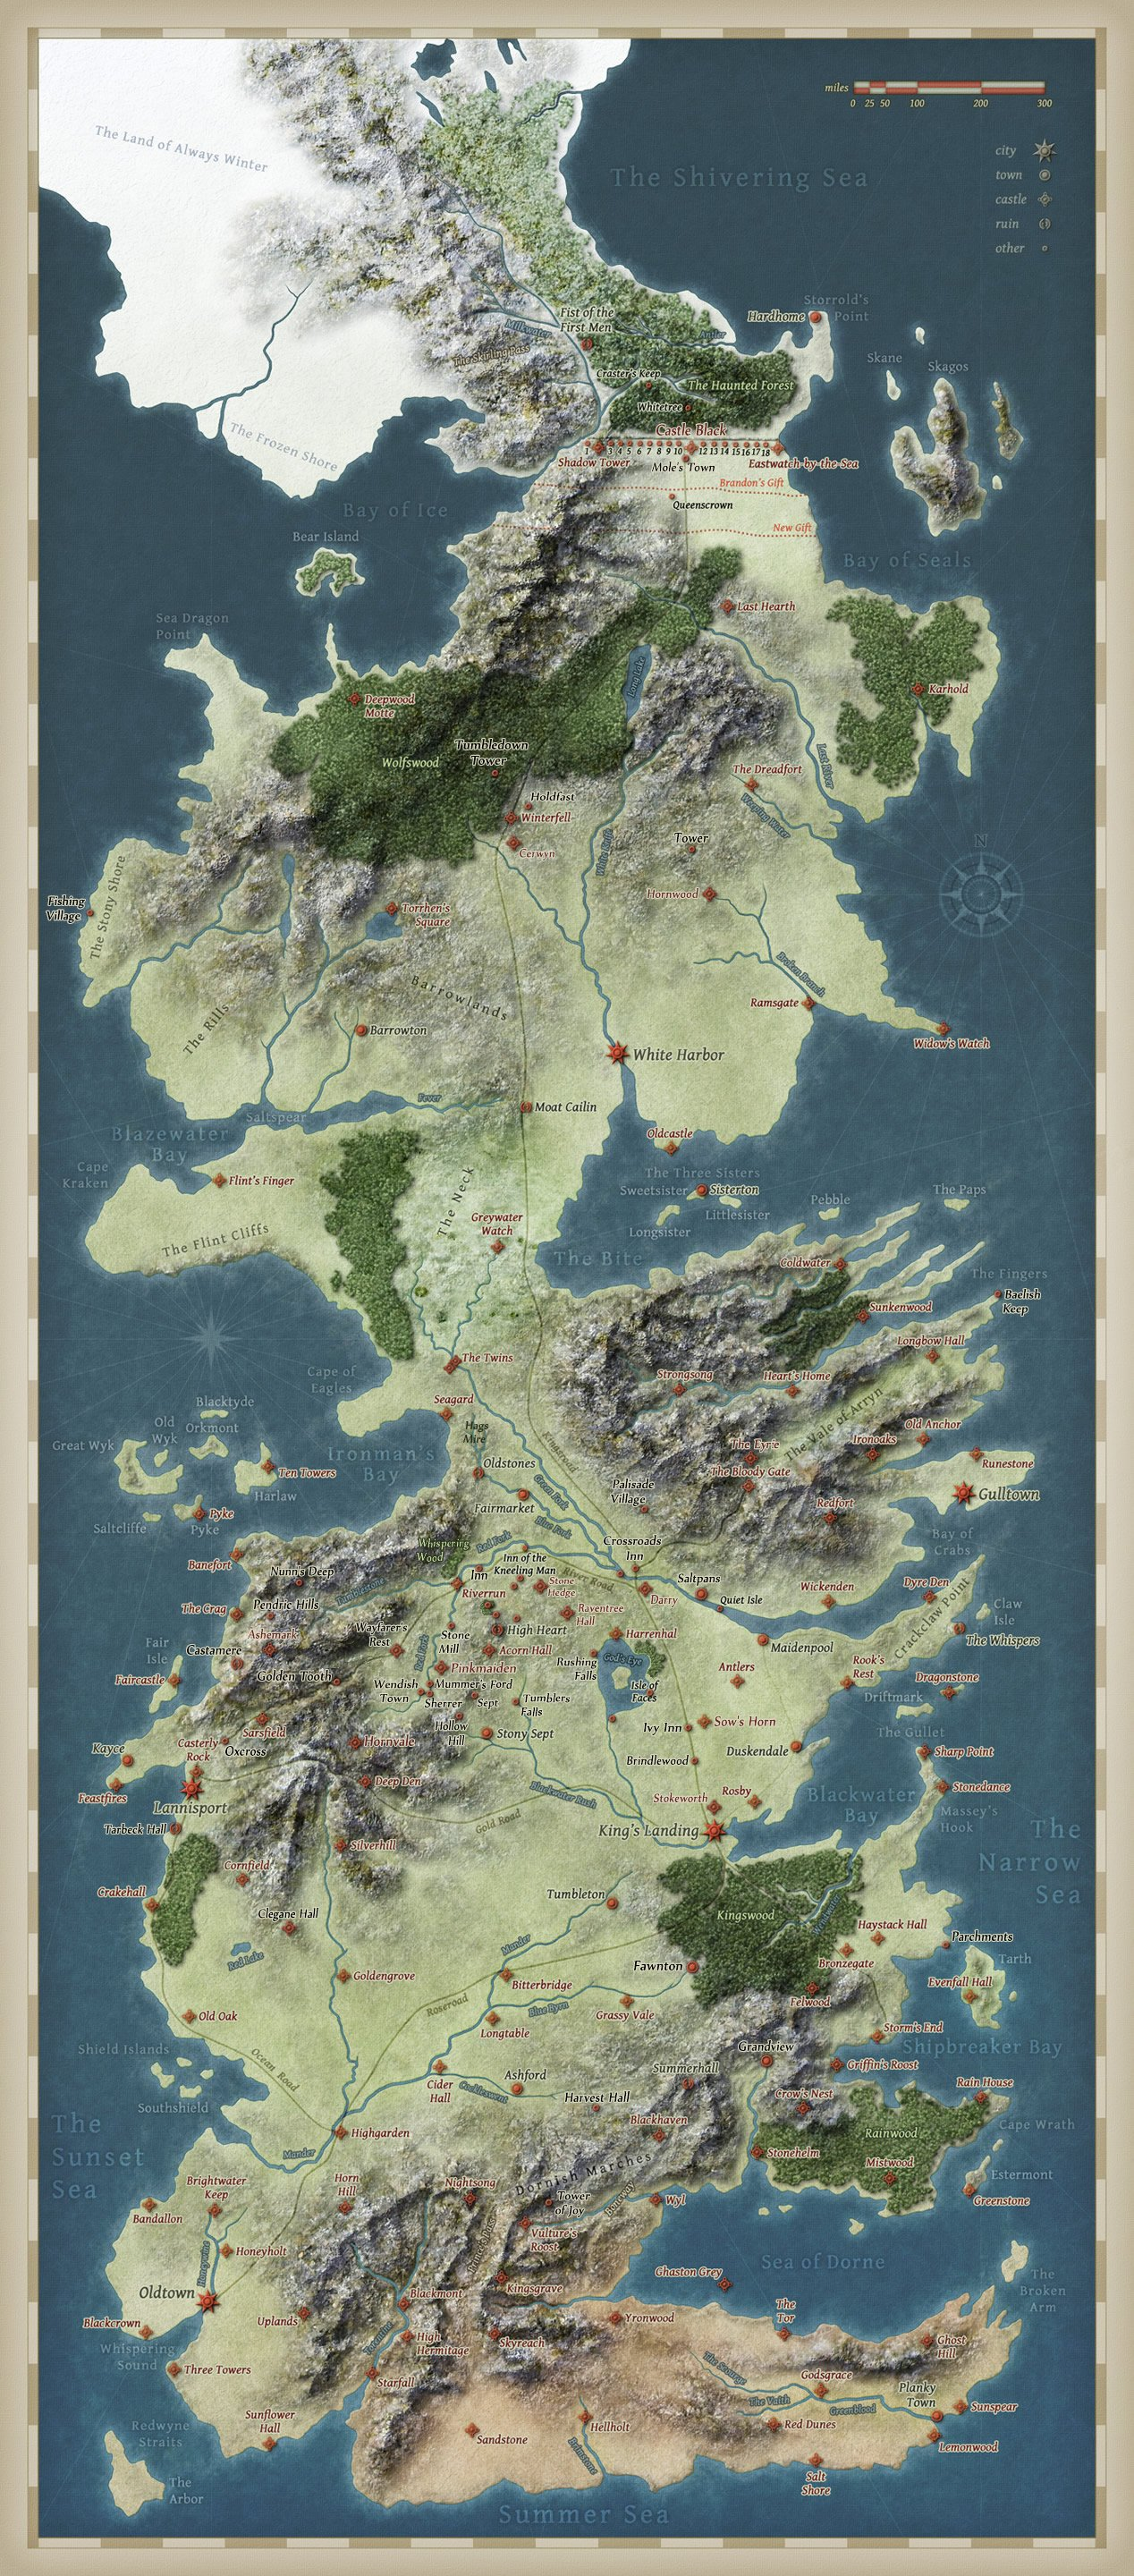 http://7kingdoms.ru/w/images/e/e7/Map_of_westeros.jpg